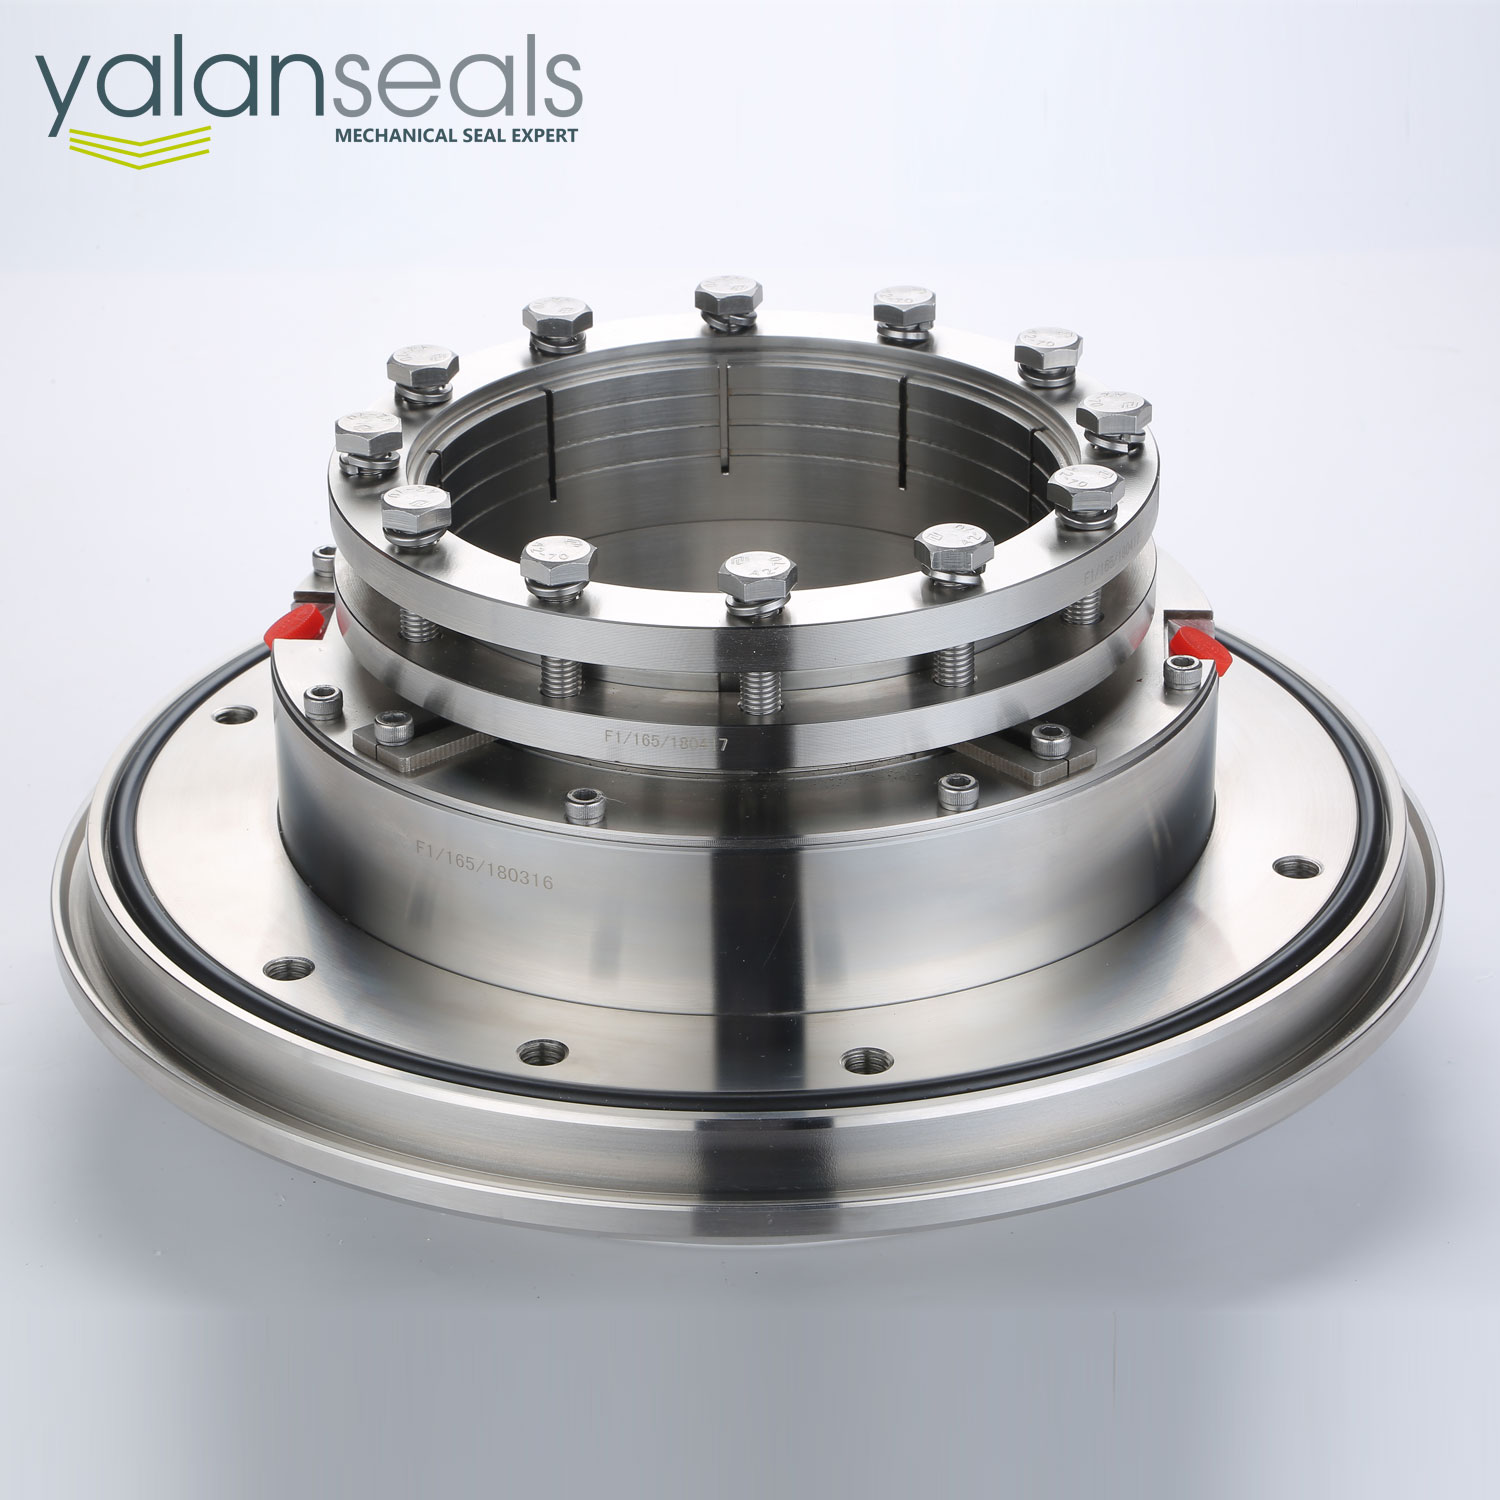 YALAN TLJ Cartridge Mechanical Seal for Salt Slurry Pumps, Paper Pulp Pumps and Desulphurization Pumps